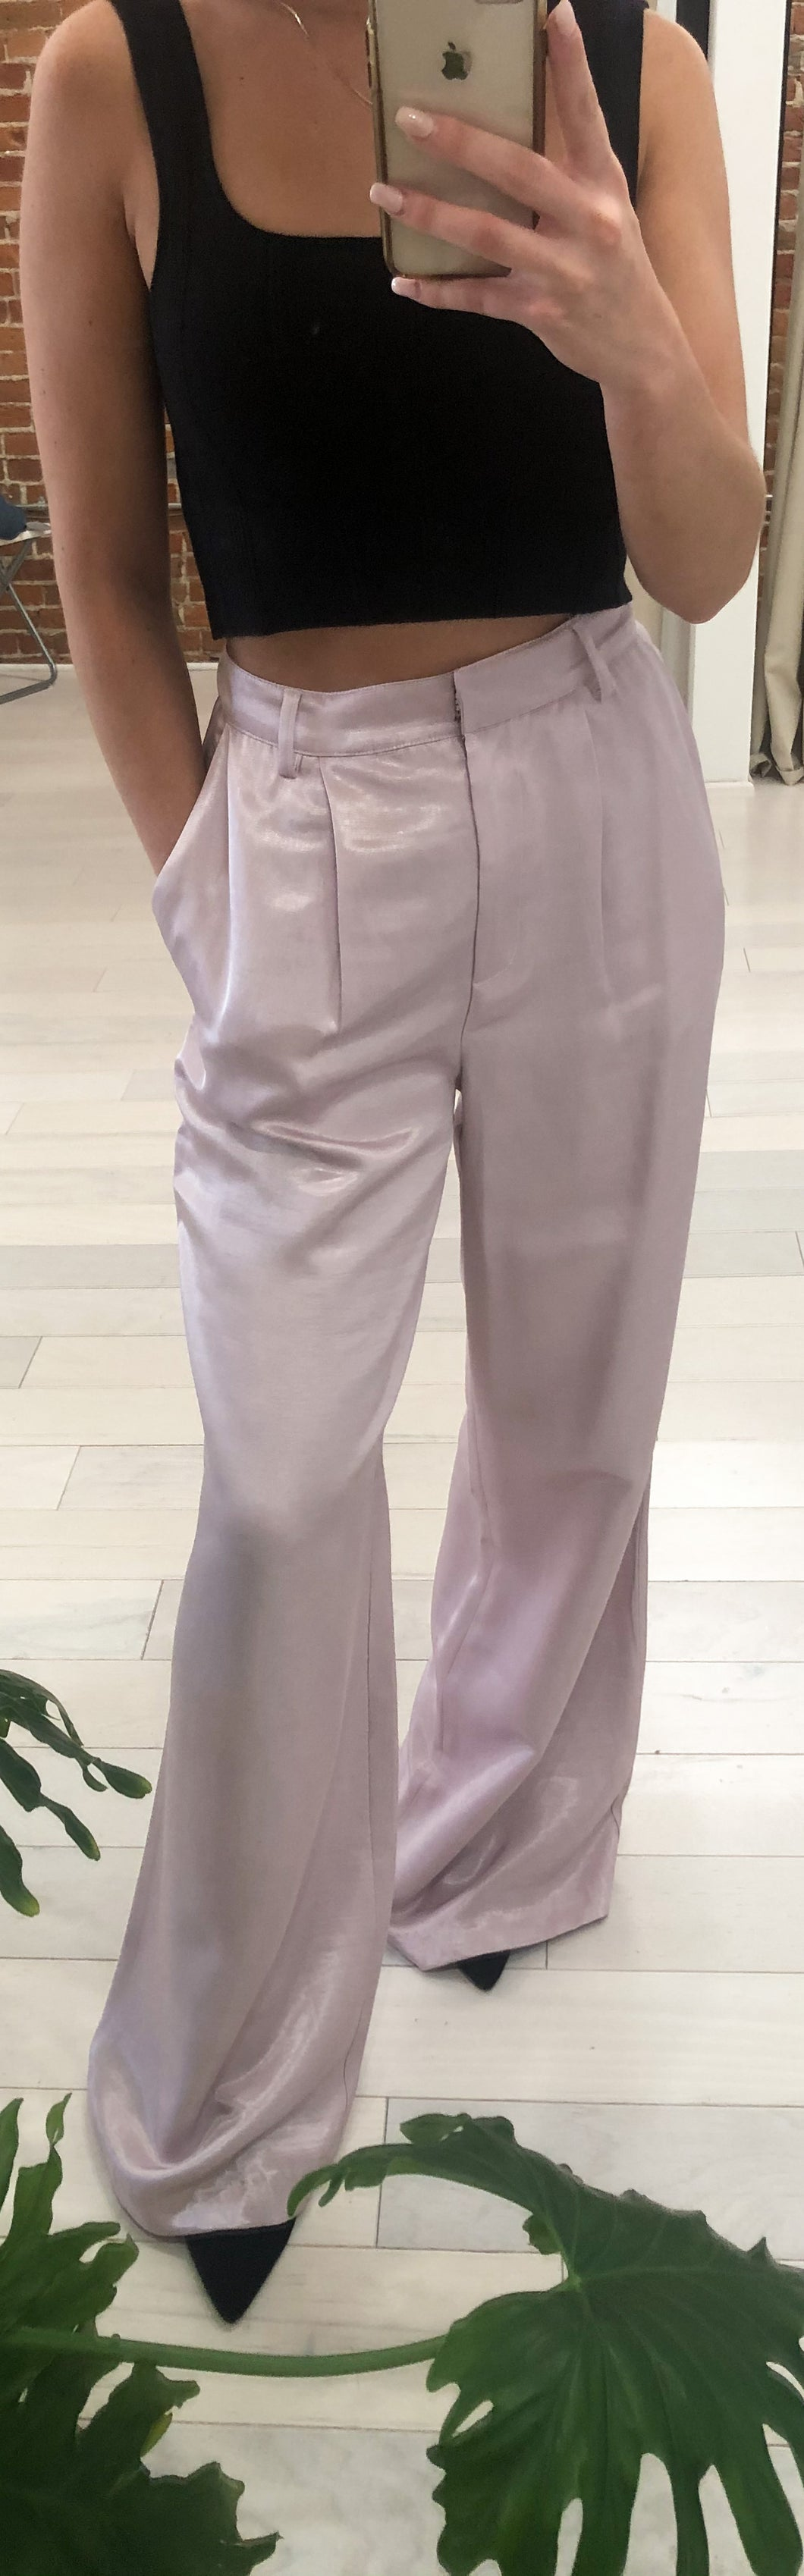 Carrington Soft Satin Wide Legged Pant in Light Pink - FINAL SALE